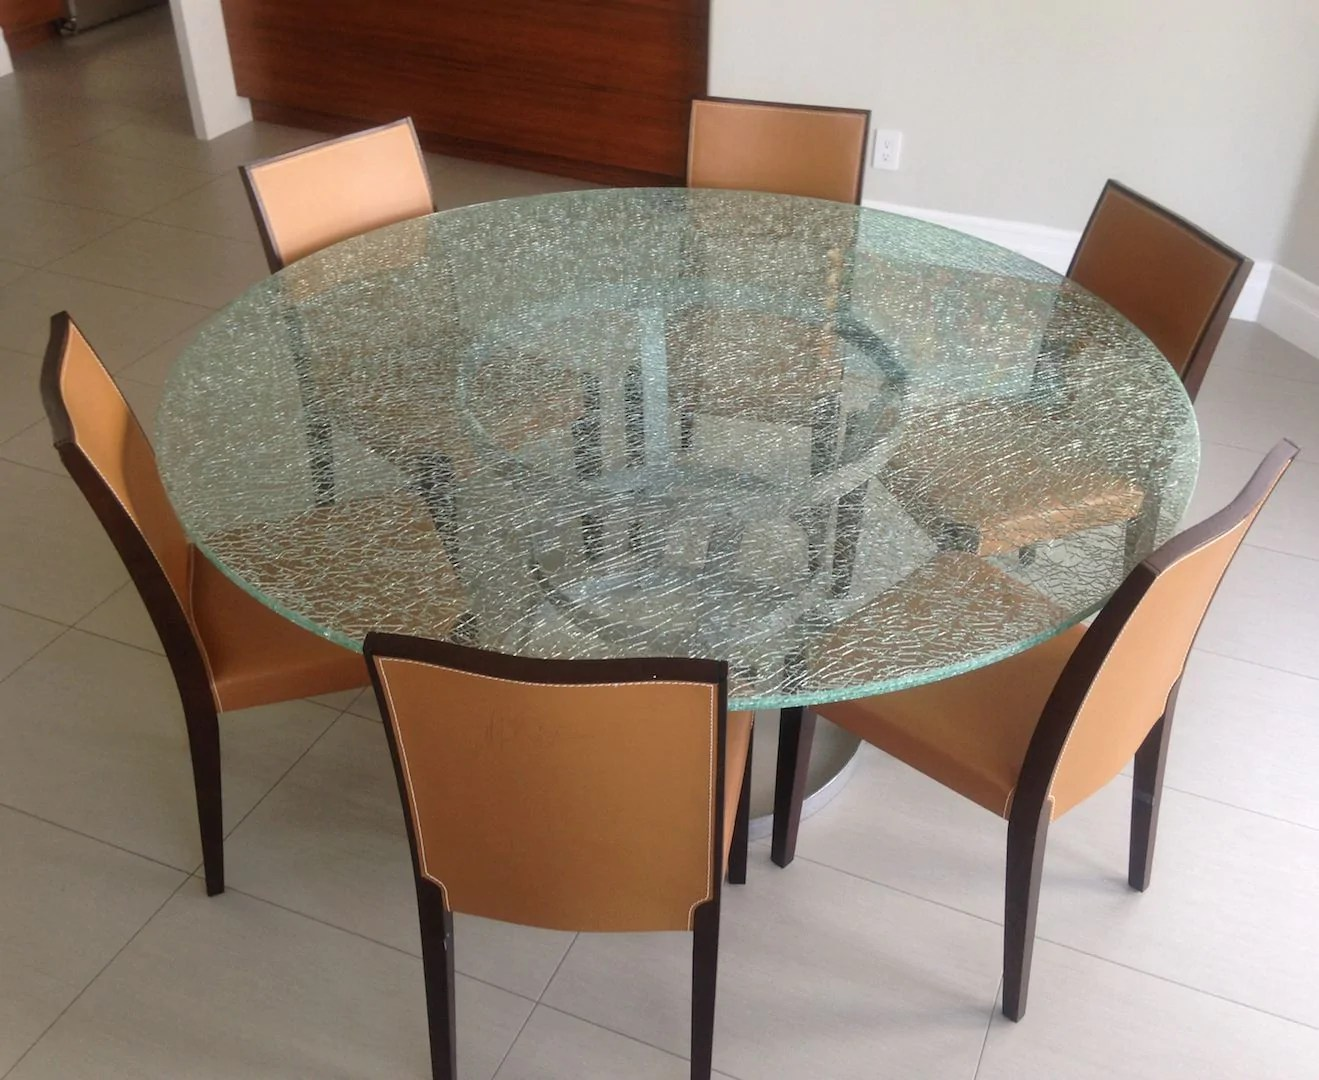 Round Crackle Glass Dining Table With Tripod Metal Base Mortise Tenon